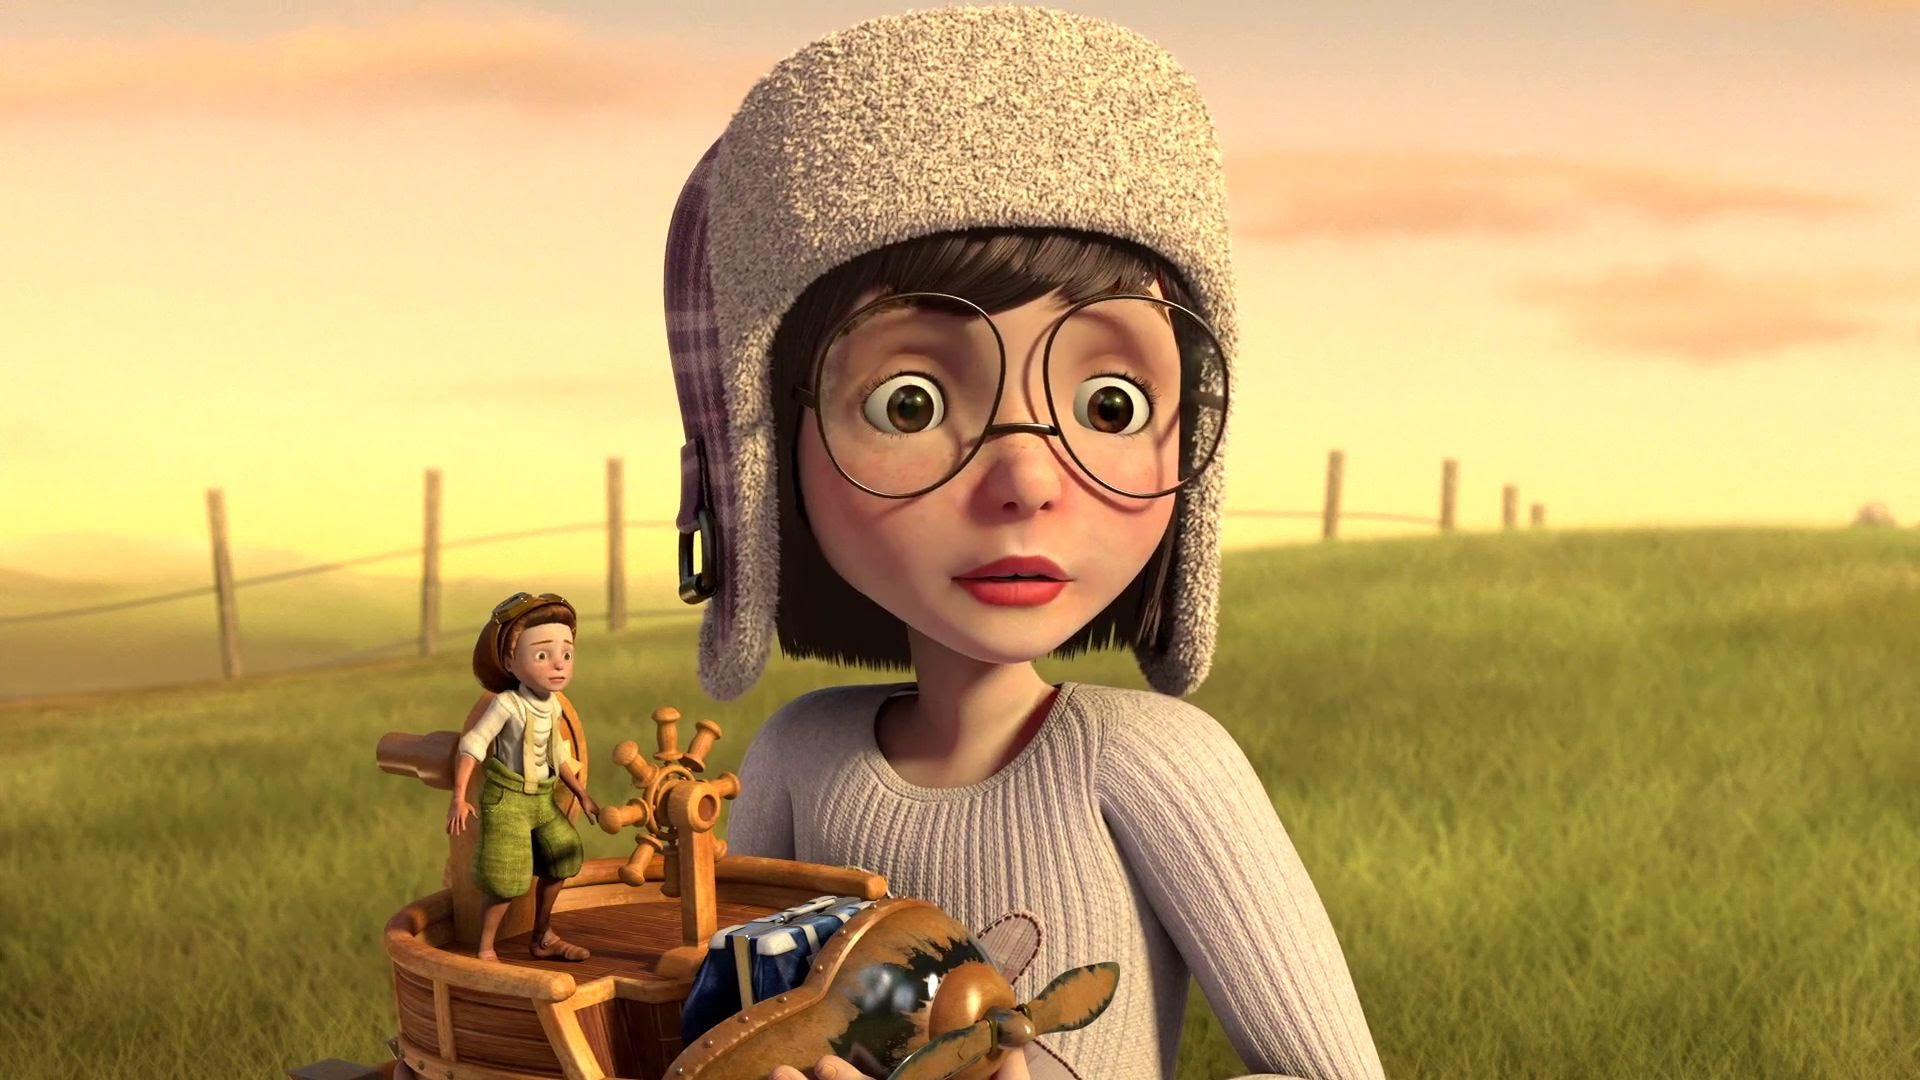 soar an animated short directed by alyce tzue